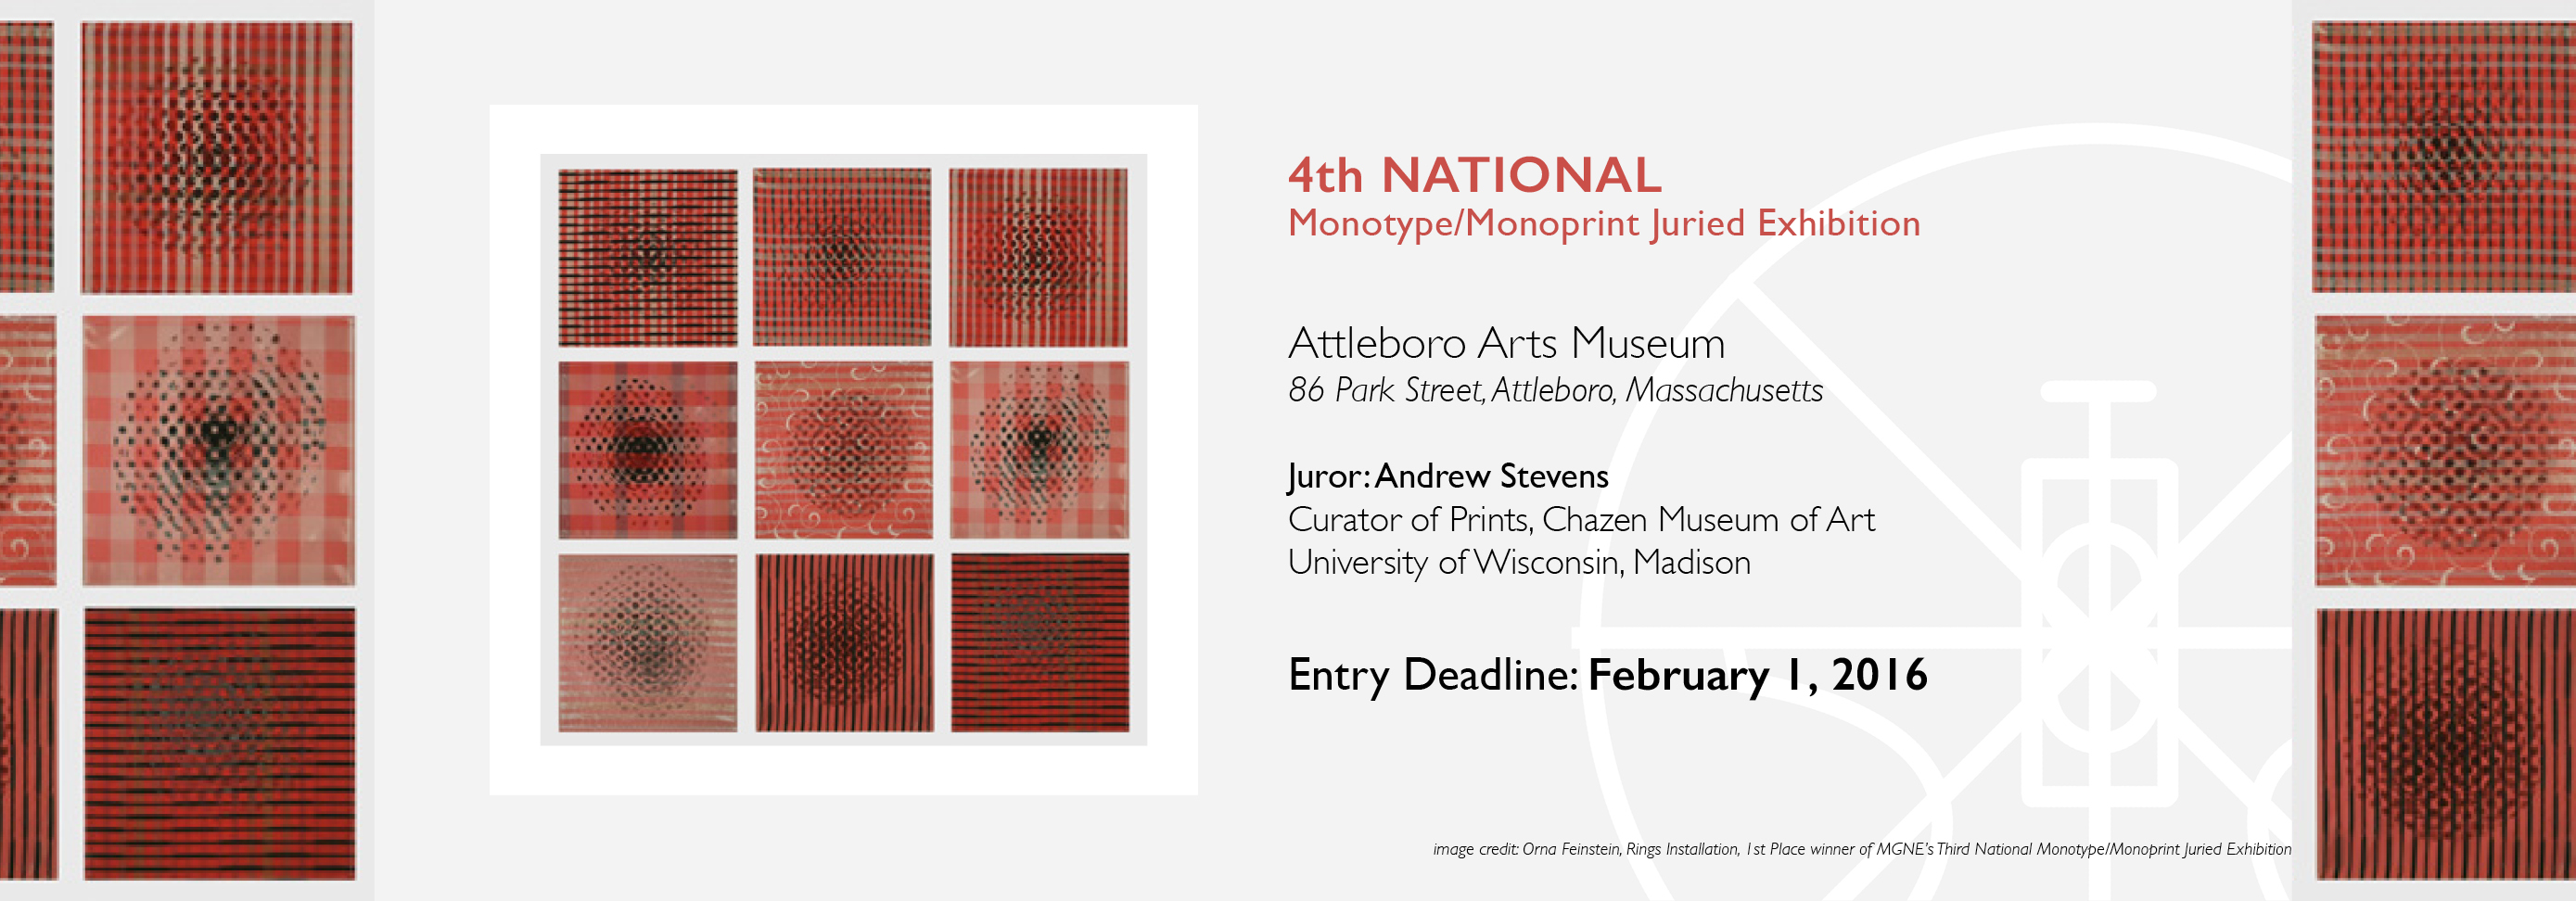 Save the Date! 4th National Exhibition